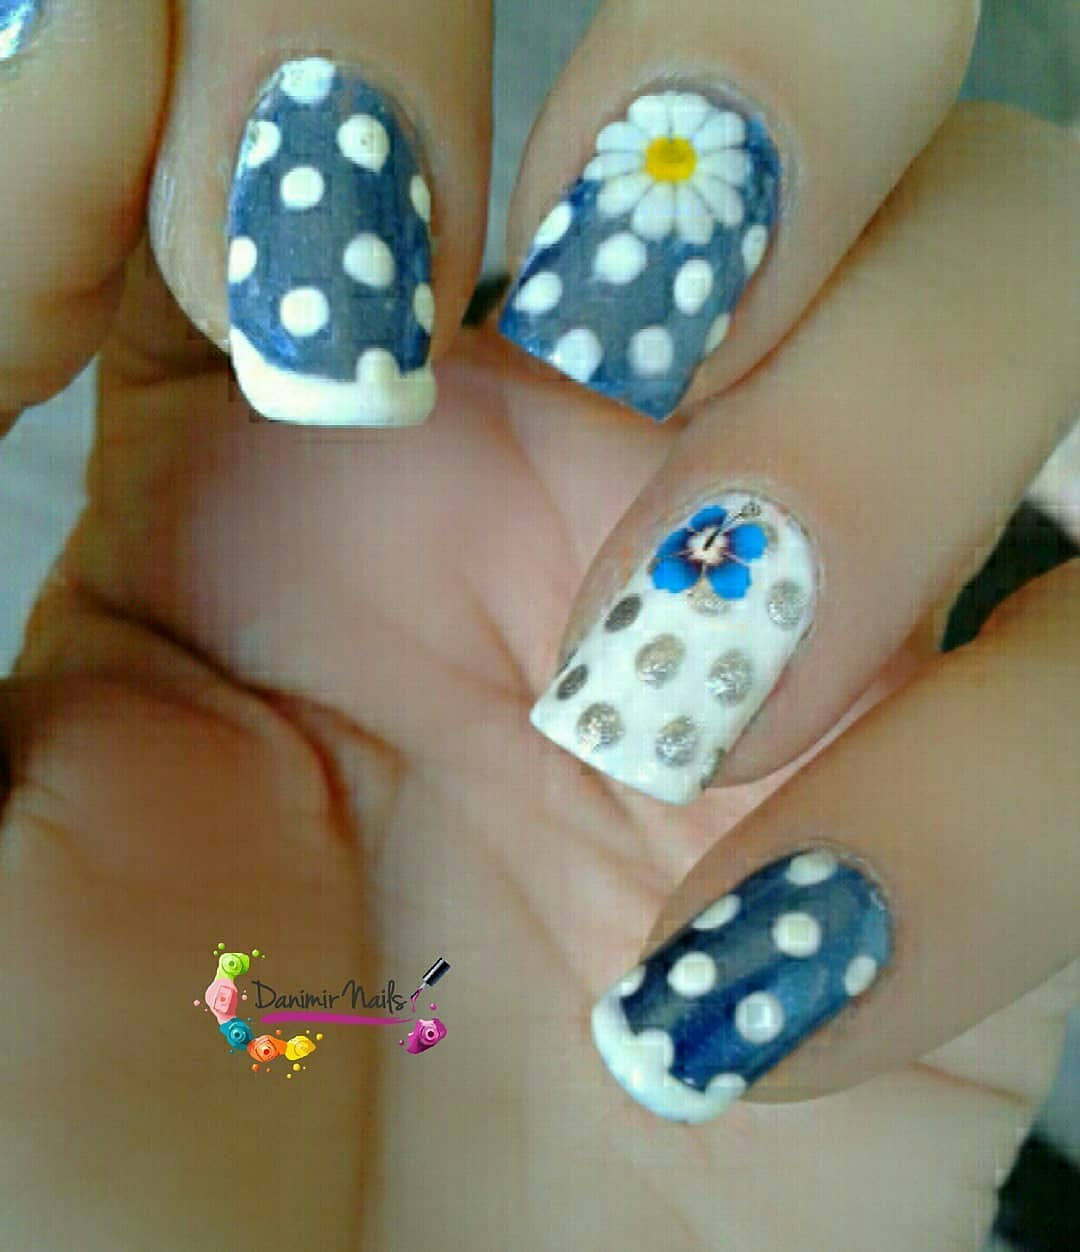 Modern Blue and White Polka Dot Nail Art Design with Flower